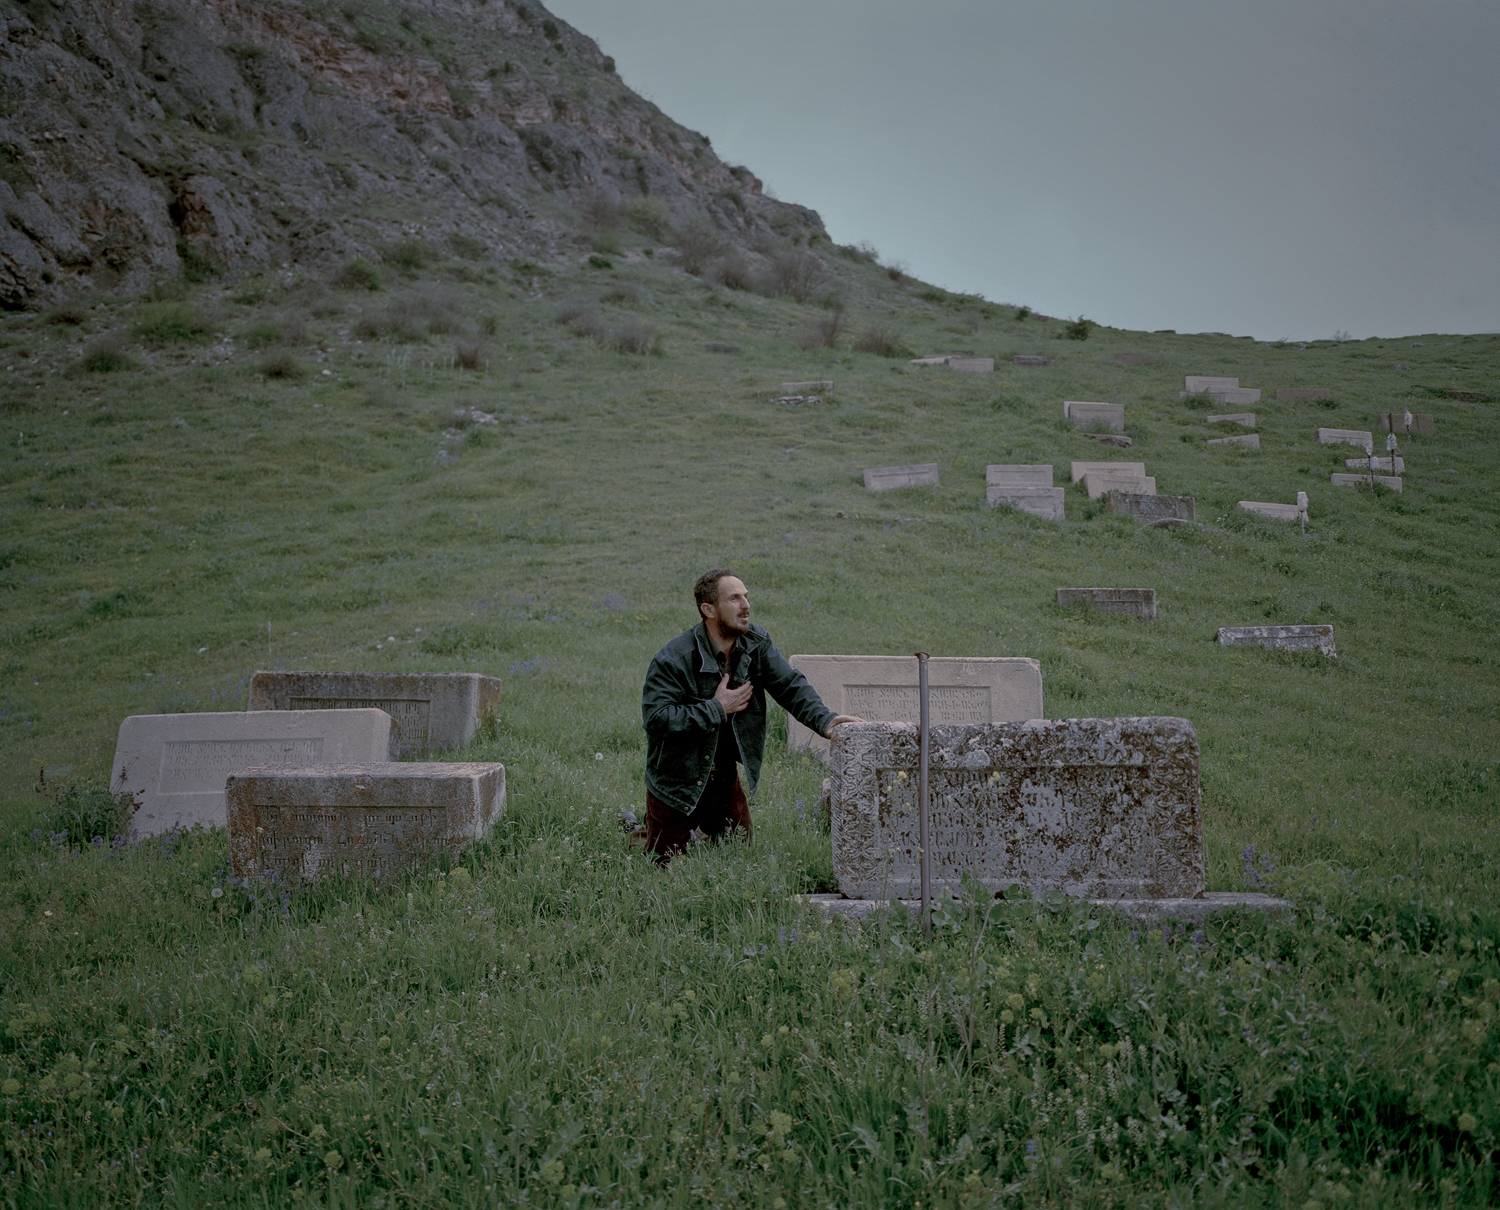 Vardadzor.  Hovik is praying among the Armenian gravesites.  He put the heavy headstones back onto the graves alone, with the help of metal rods and pullies.